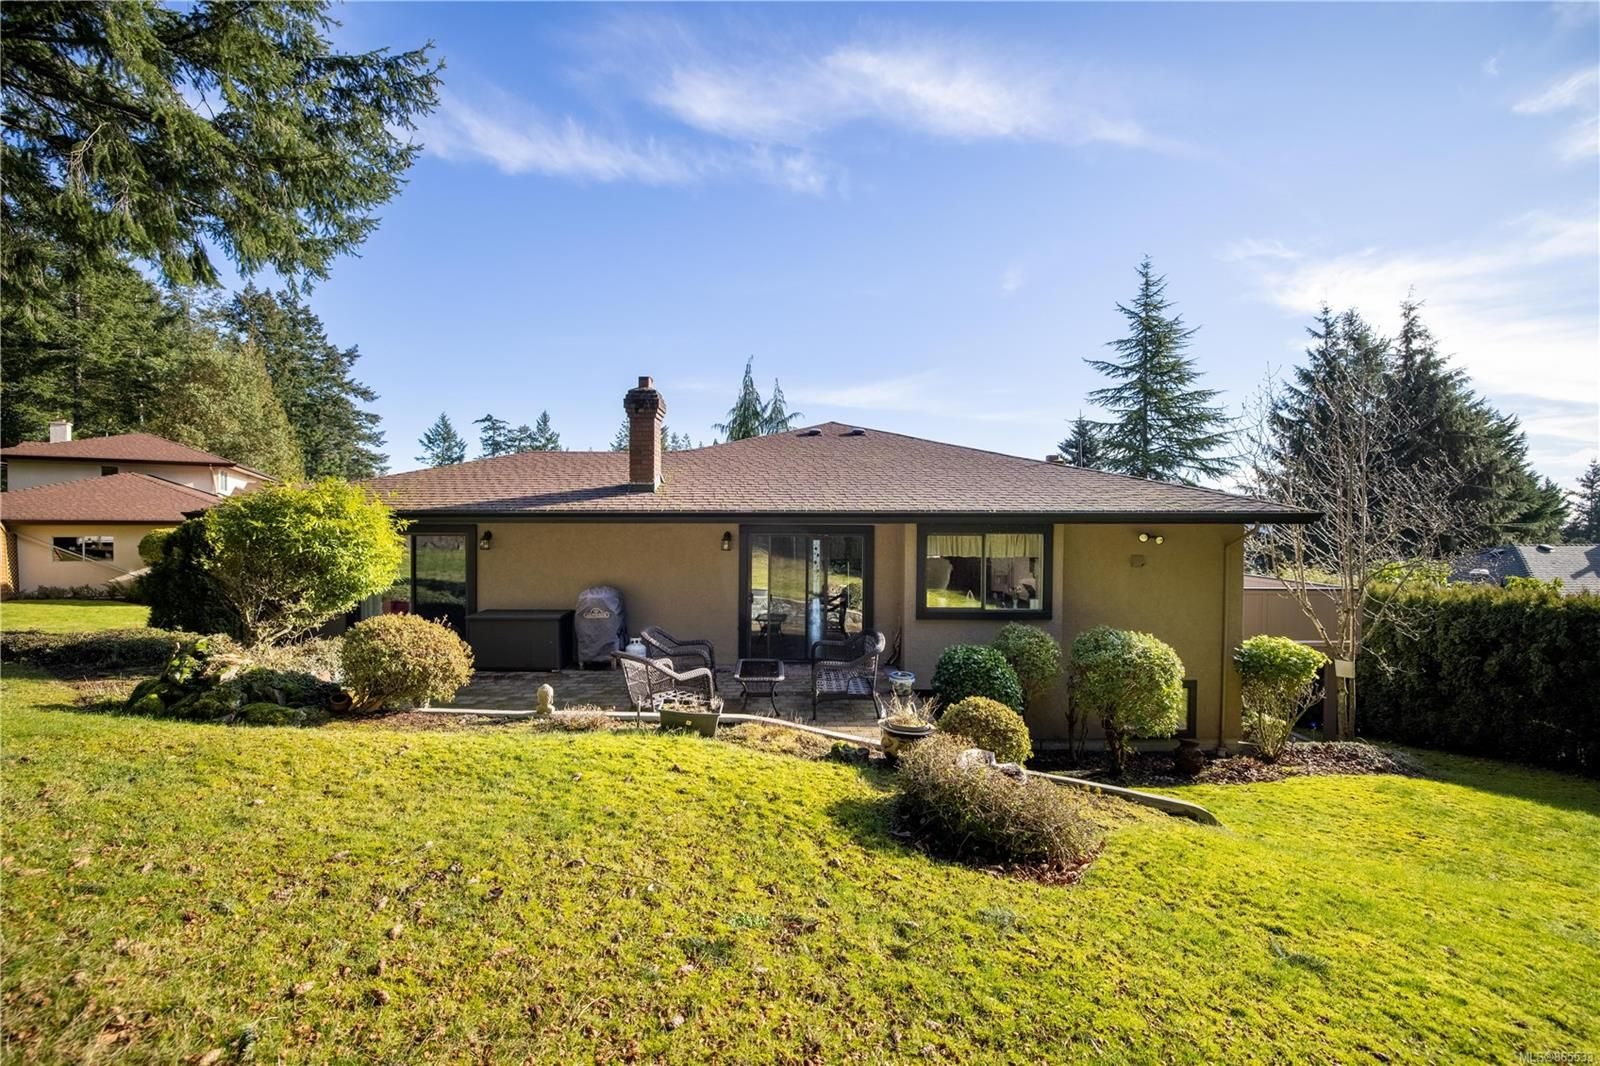 Main Photo: 4798 Amblewood Dr in : SE Broadmead House for sale (Saanich East)  : MLS®# 865533